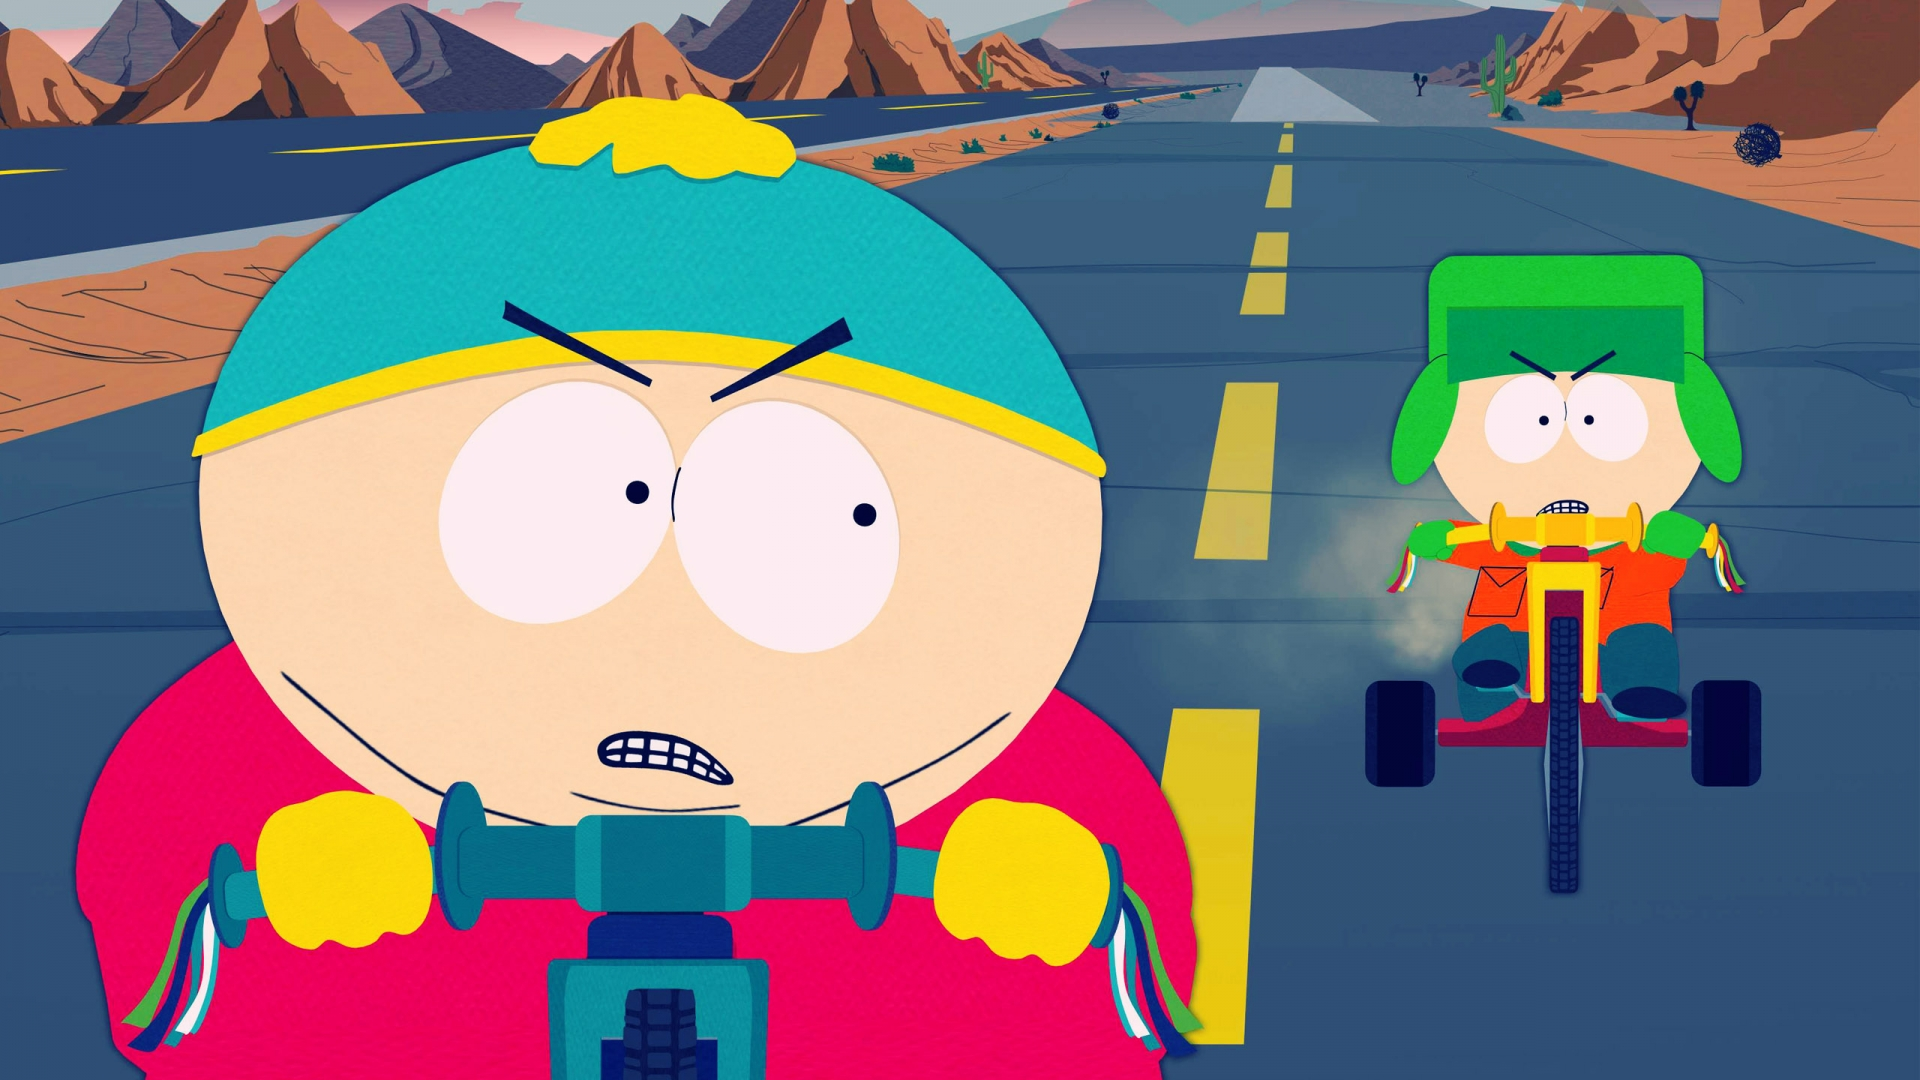 South Park Rally Computer Wallpapers Desktop Backgrounds 1920x1080 1920x1080